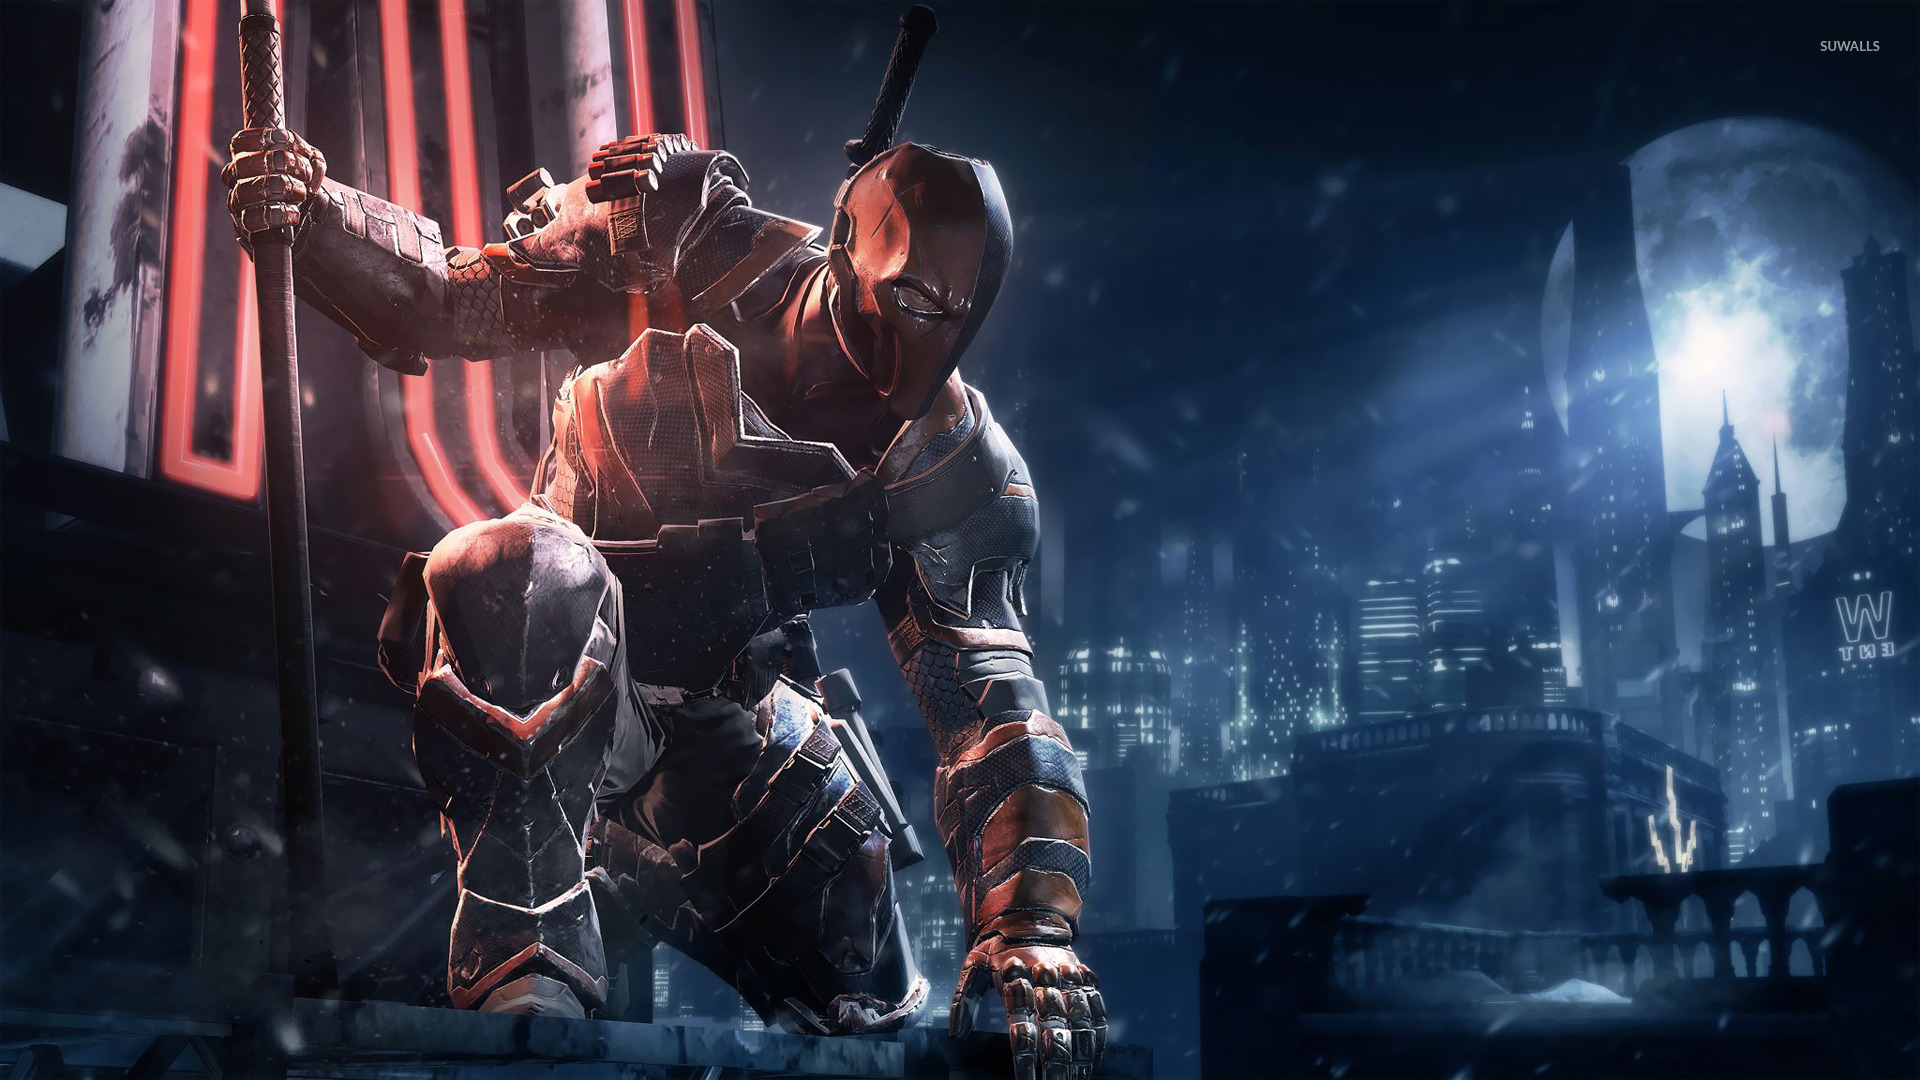 Deathstroke Batman Arkham Origins Wallpaper Game Wallpapers